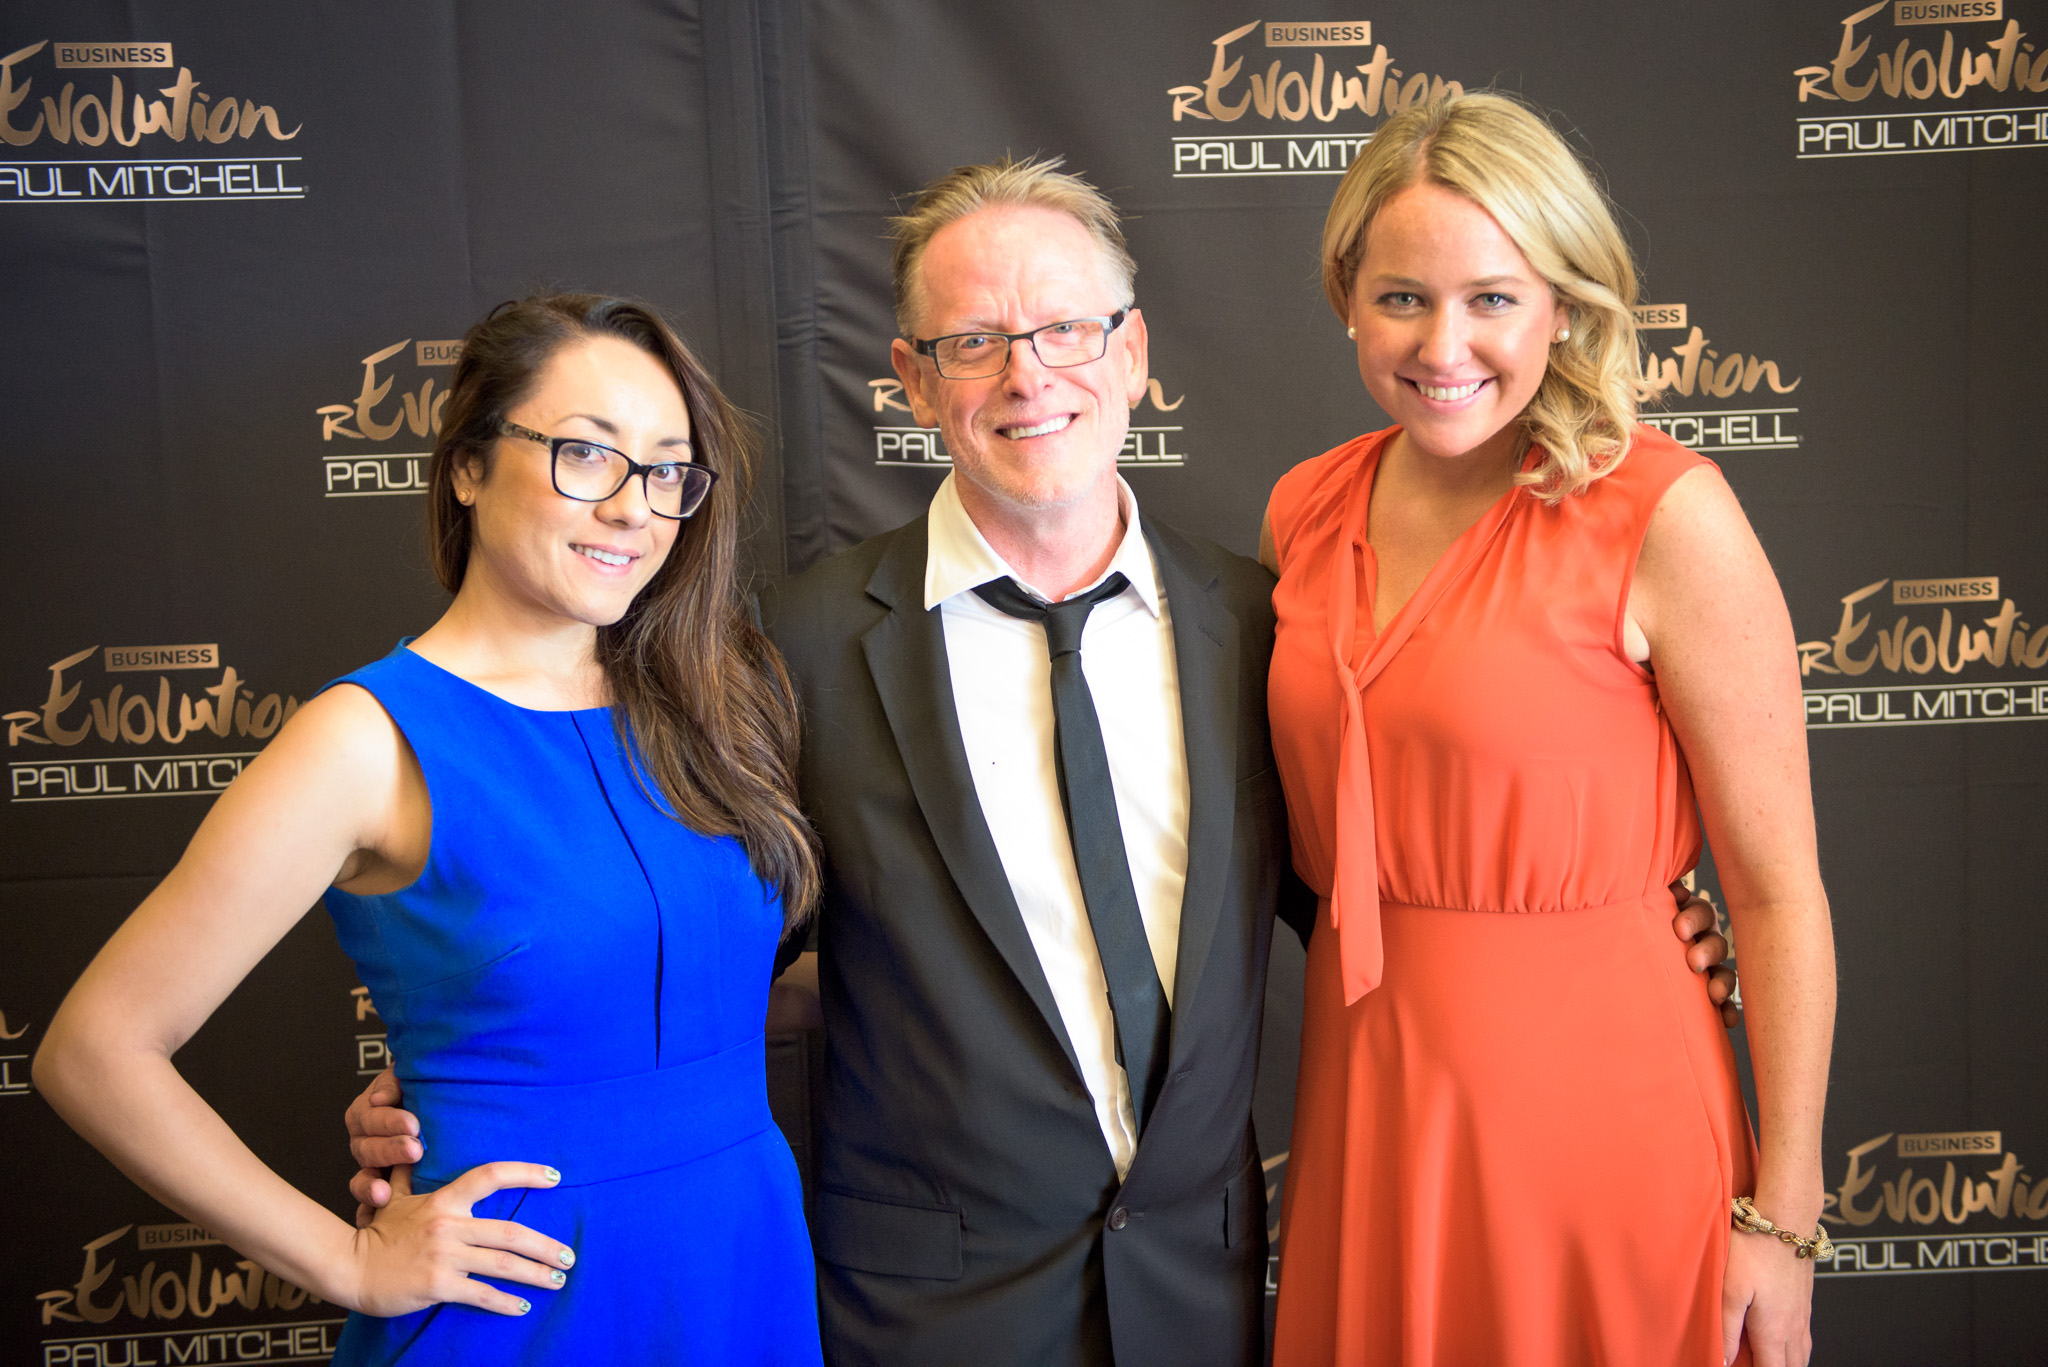 American Salon West Coast Editor Kamala Kirk, Guest Speaker Antony Whitaker and Digital Editor Kelsey Murray